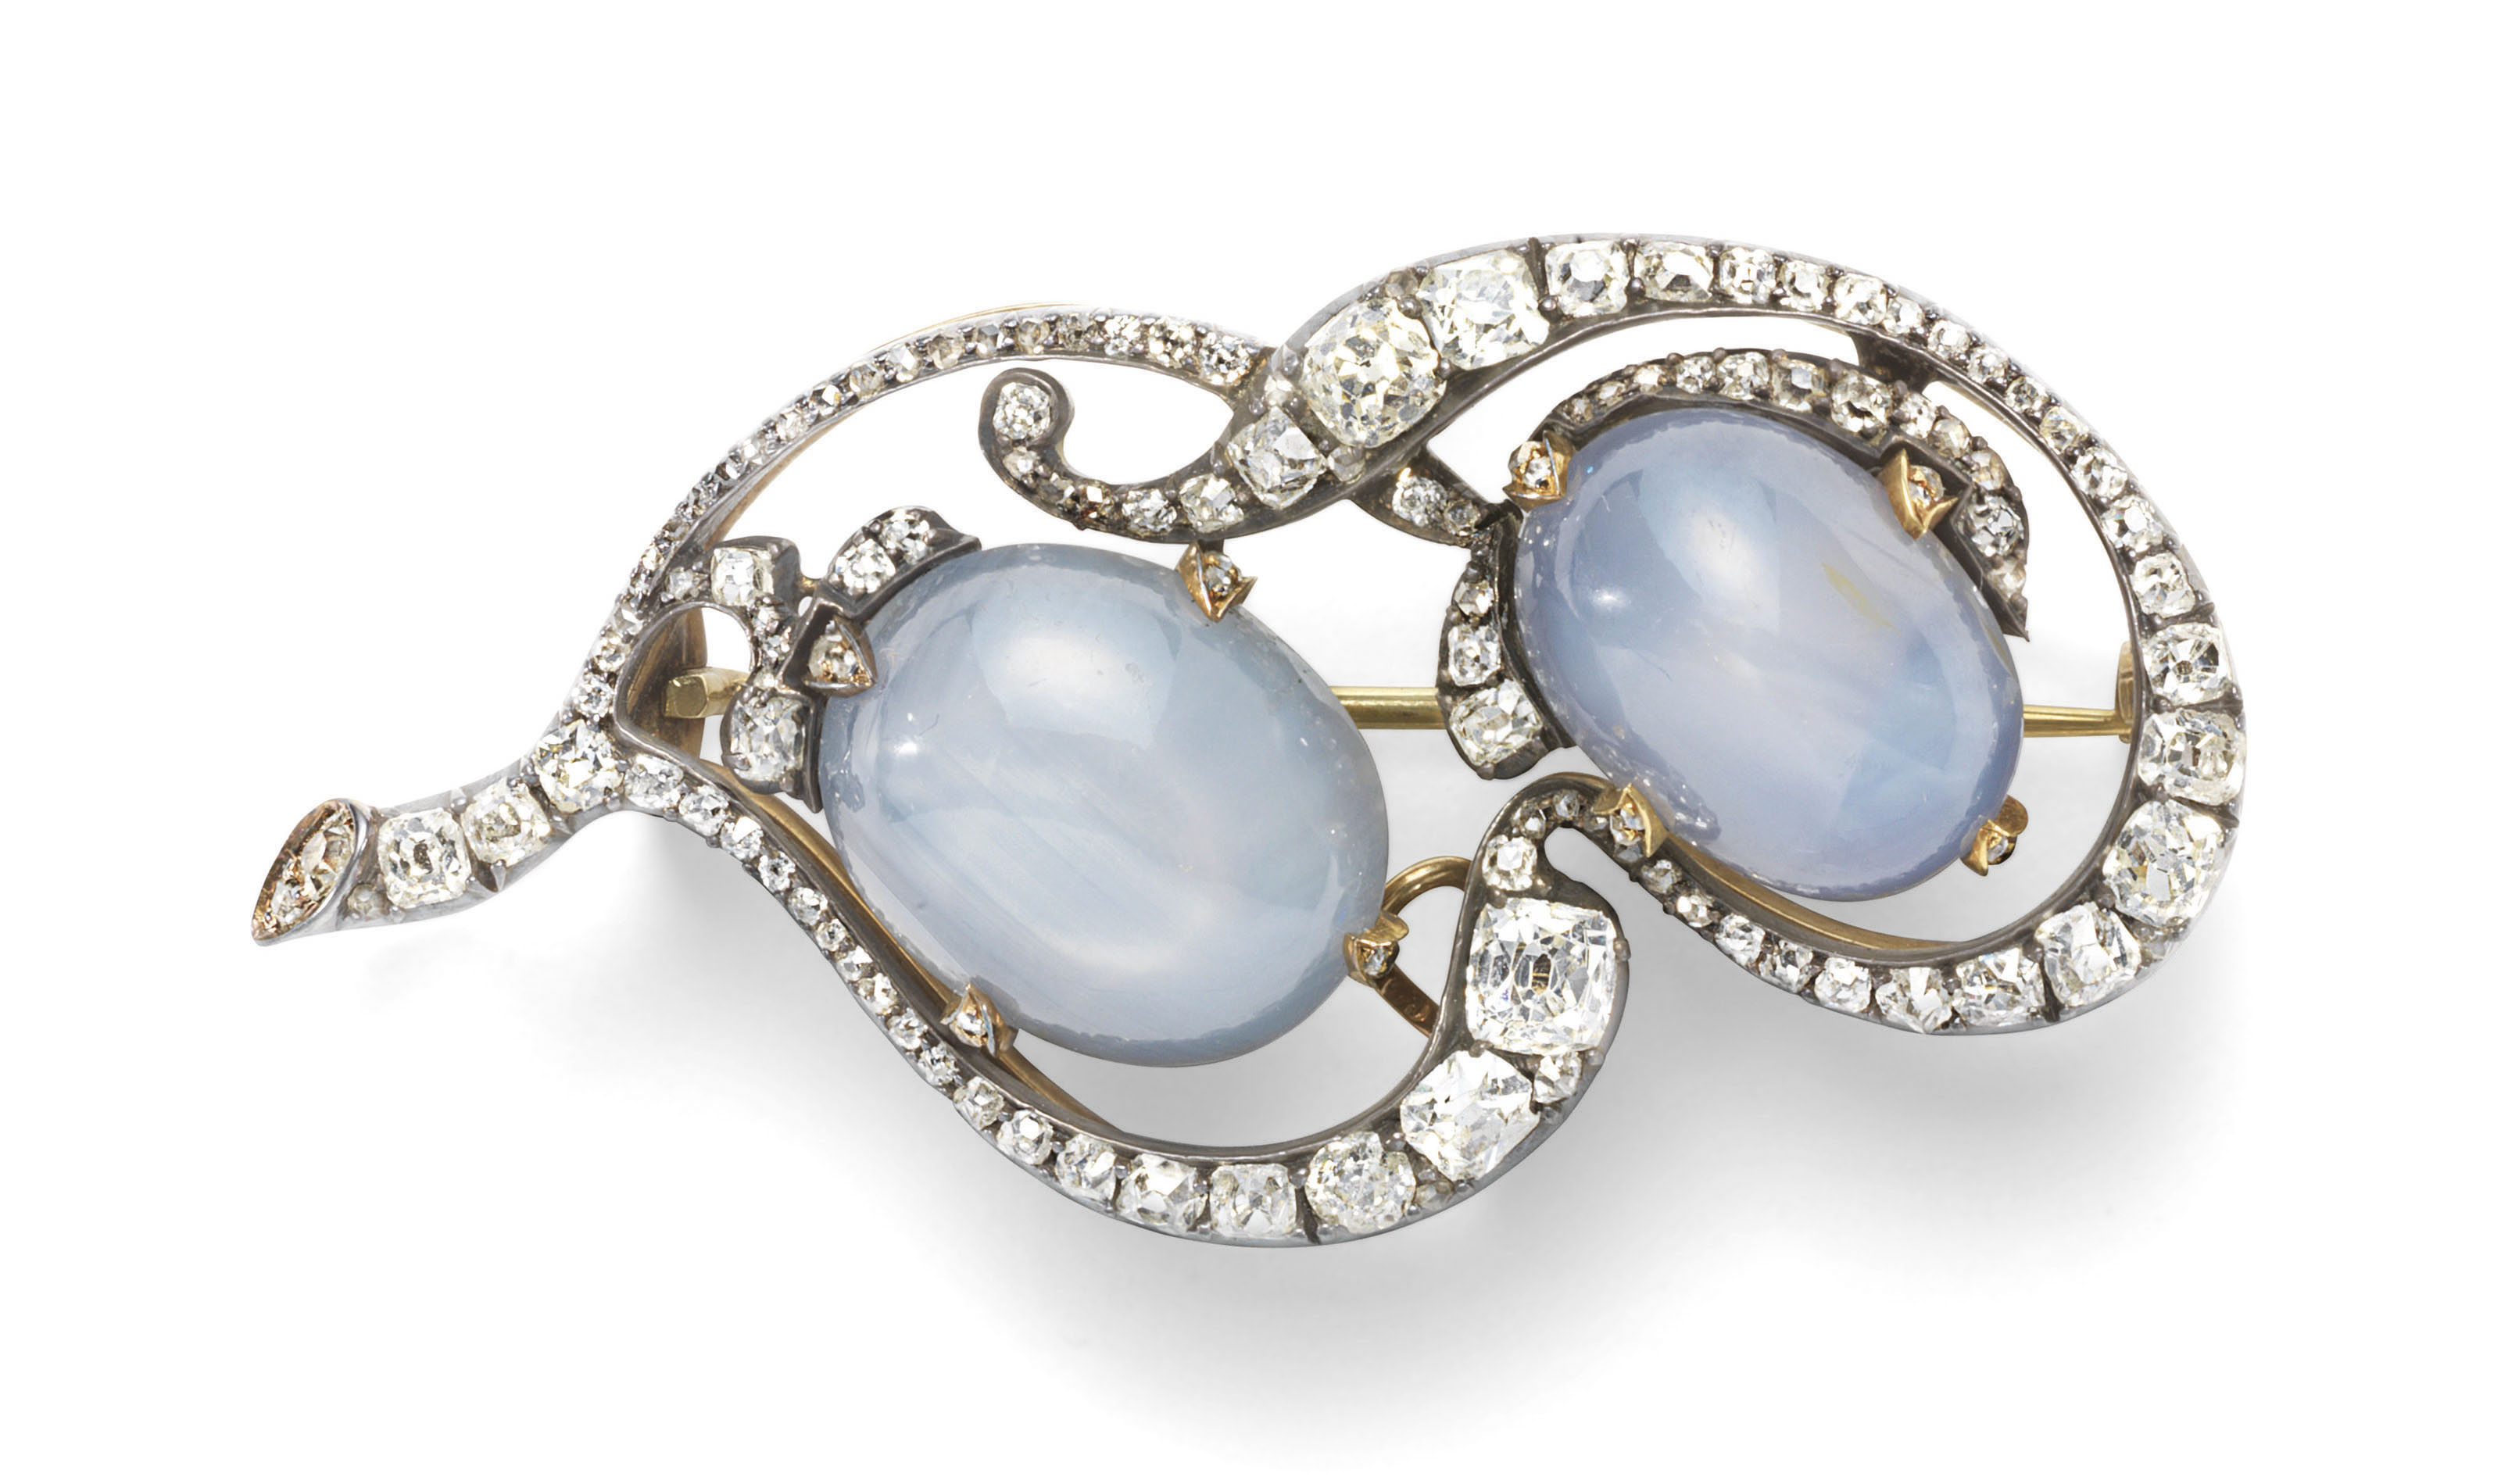 A SILVER-TOPPED GOLD-MOUNTED DIAMOND AND SAPPHIRE BROOCH